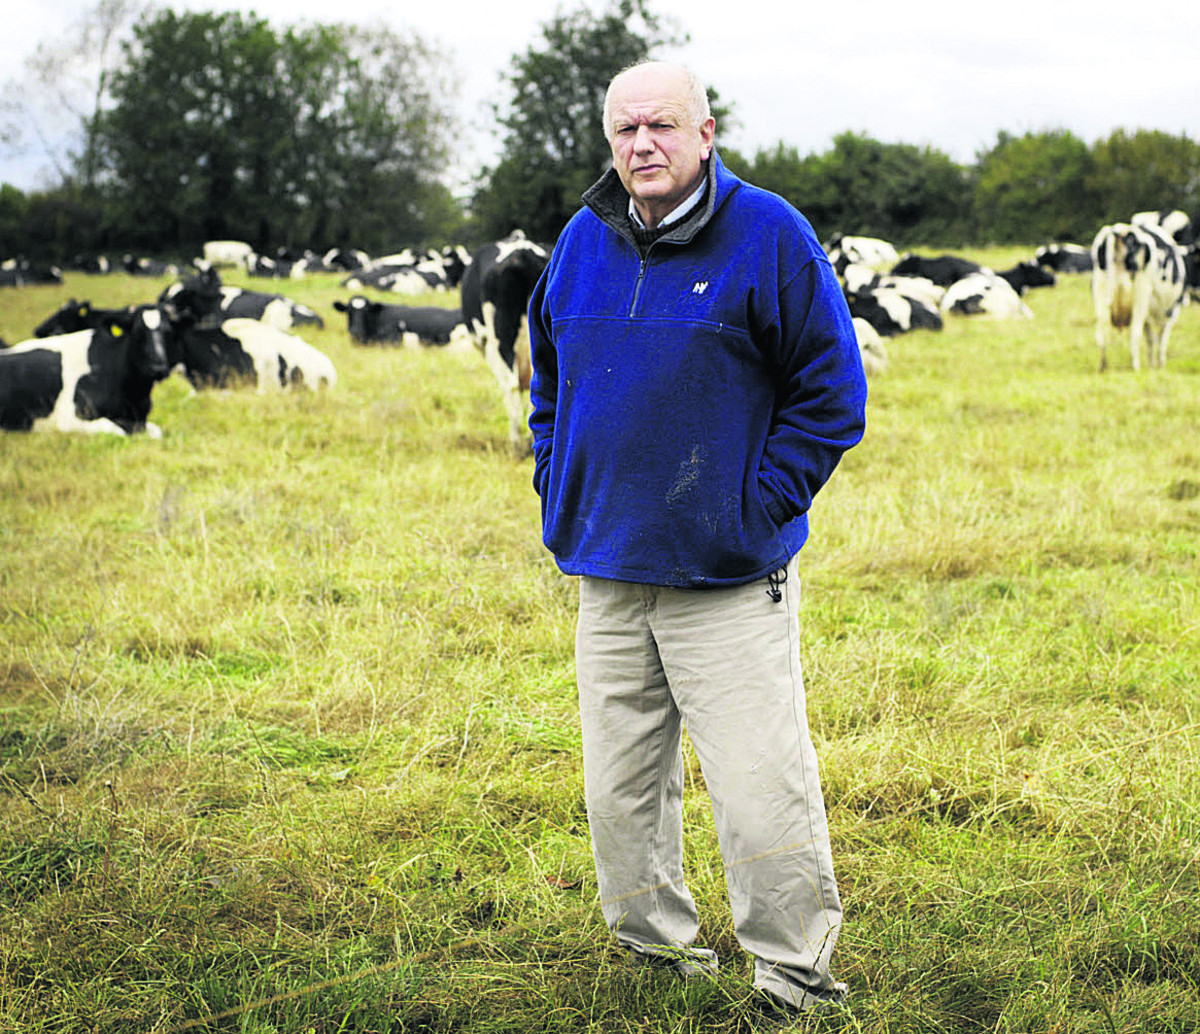 WORRIED: John Malins with some of his cows at Hawkwell Farm, in Bicester